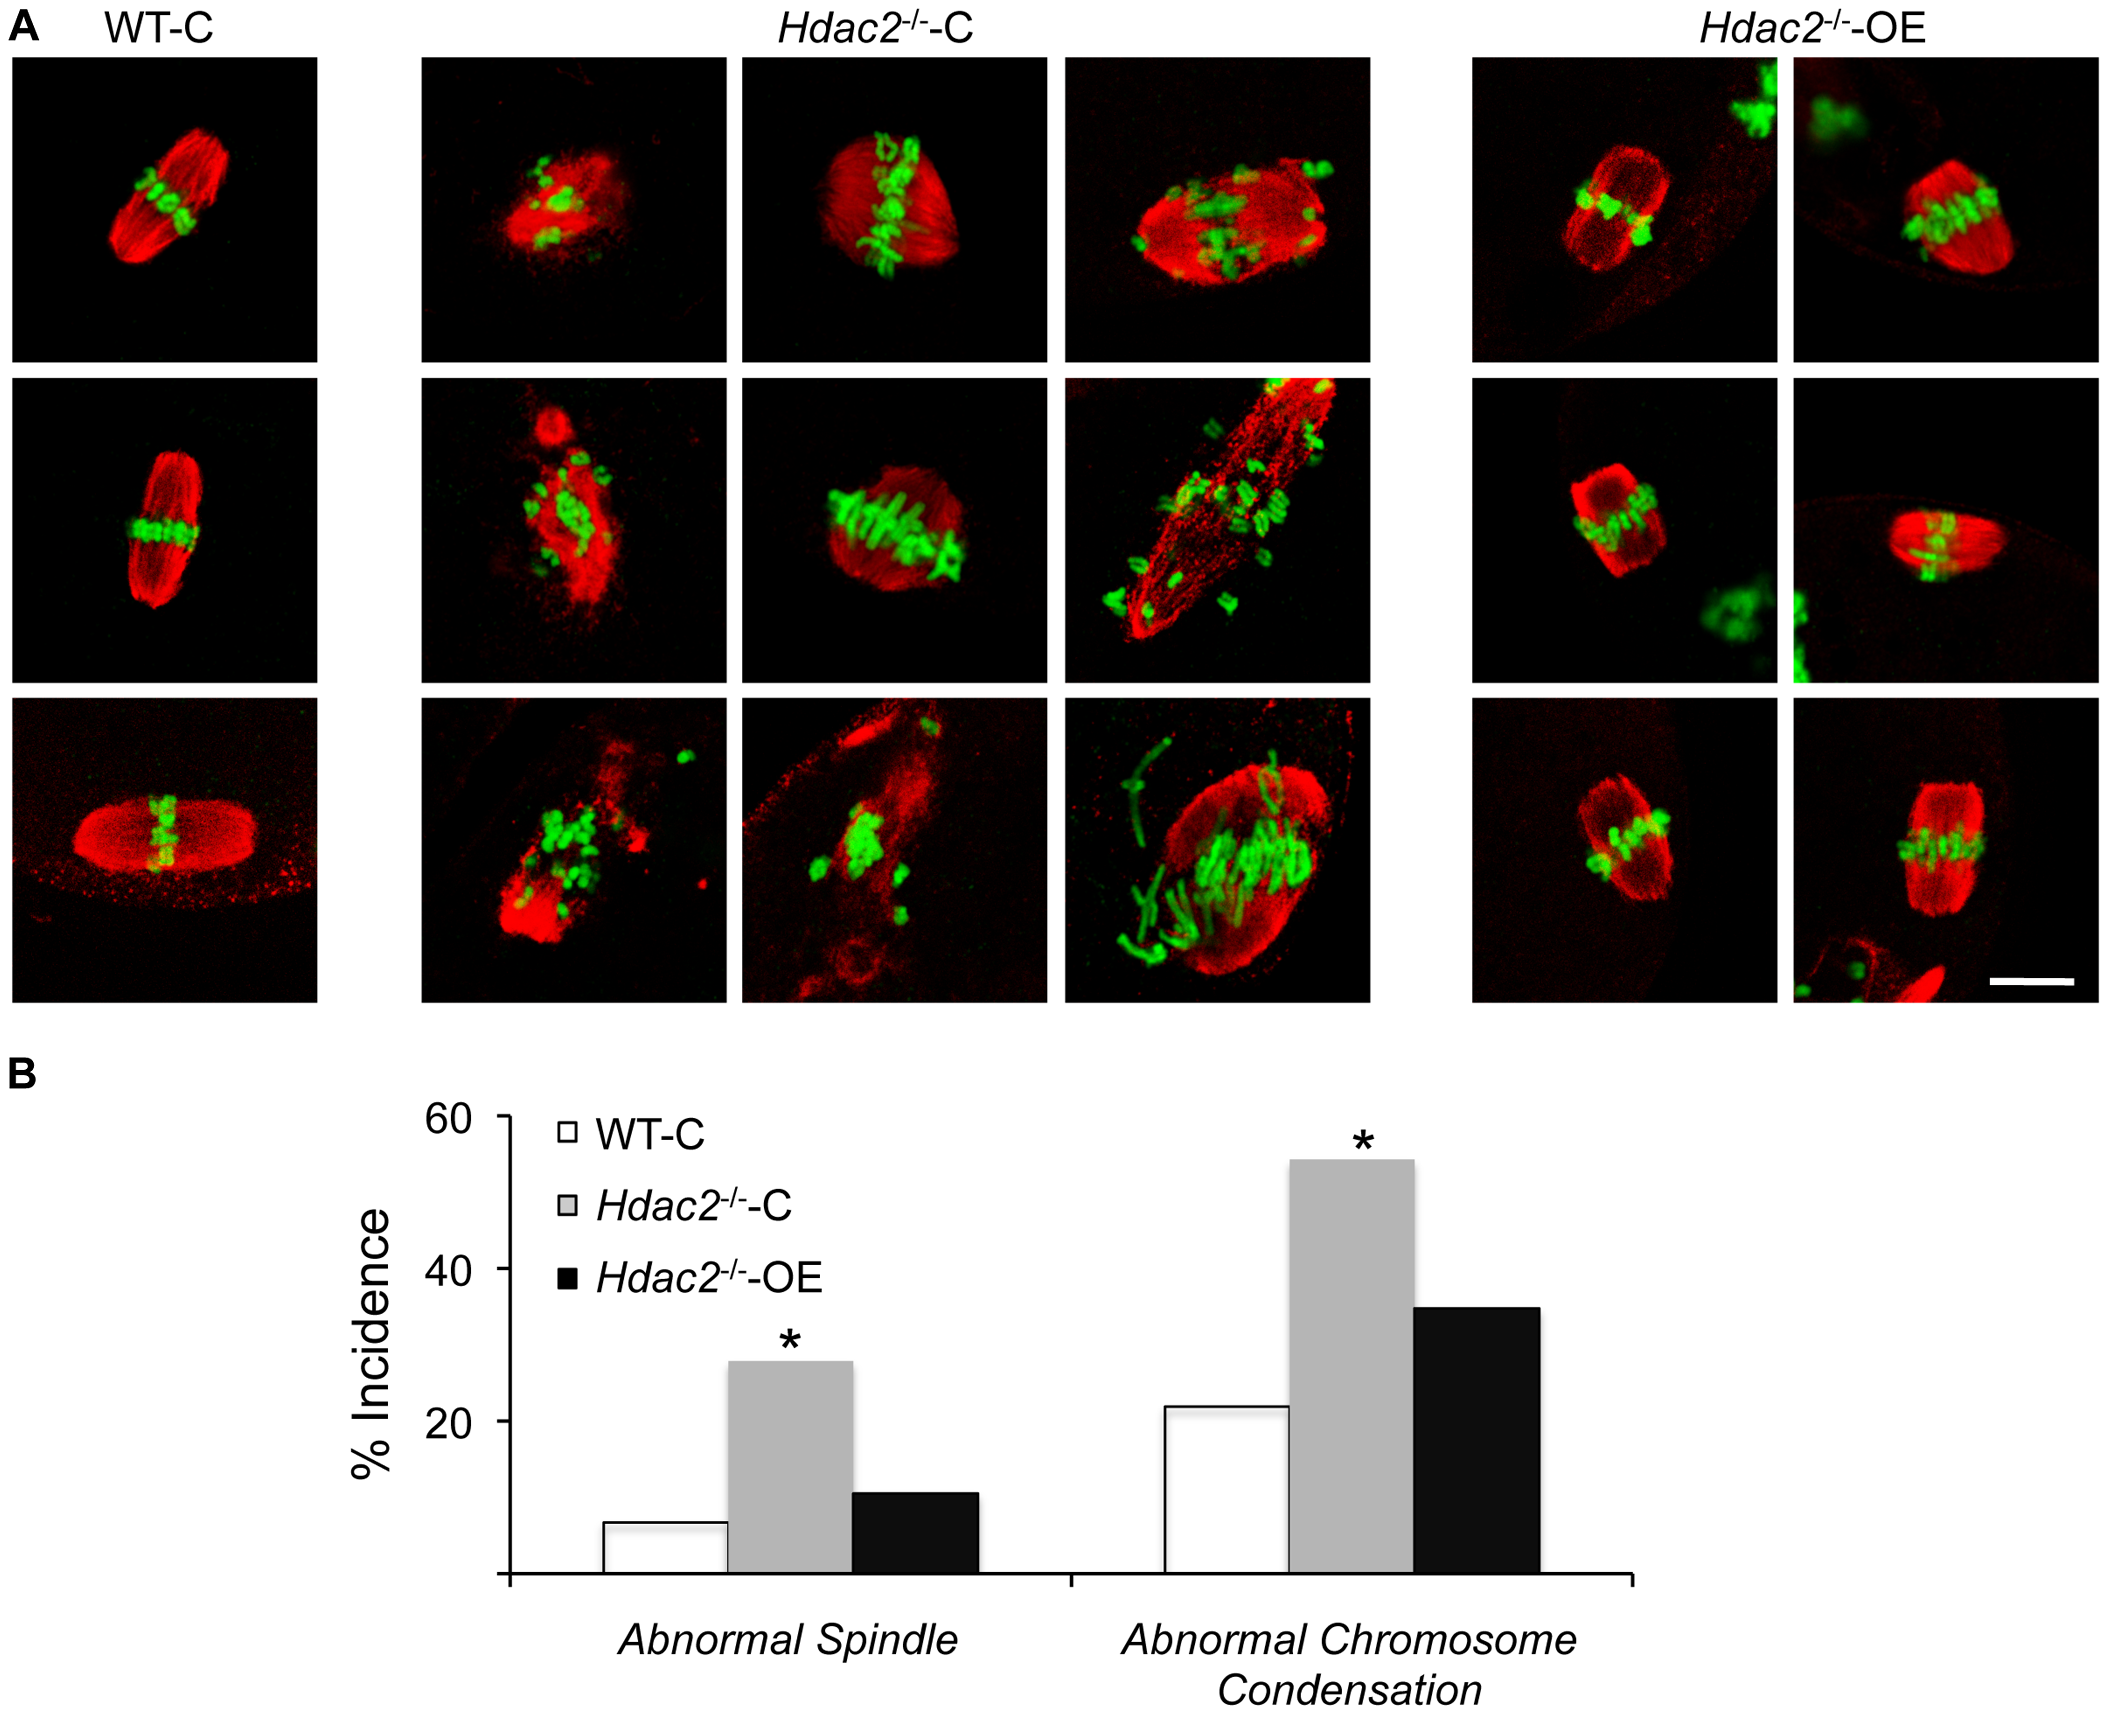 Expression of HDAC2 in <i>Hdac2<sup>−/−</sup></i> oocytes restores normal chromosome condensation and spindle formation in MII eggs.